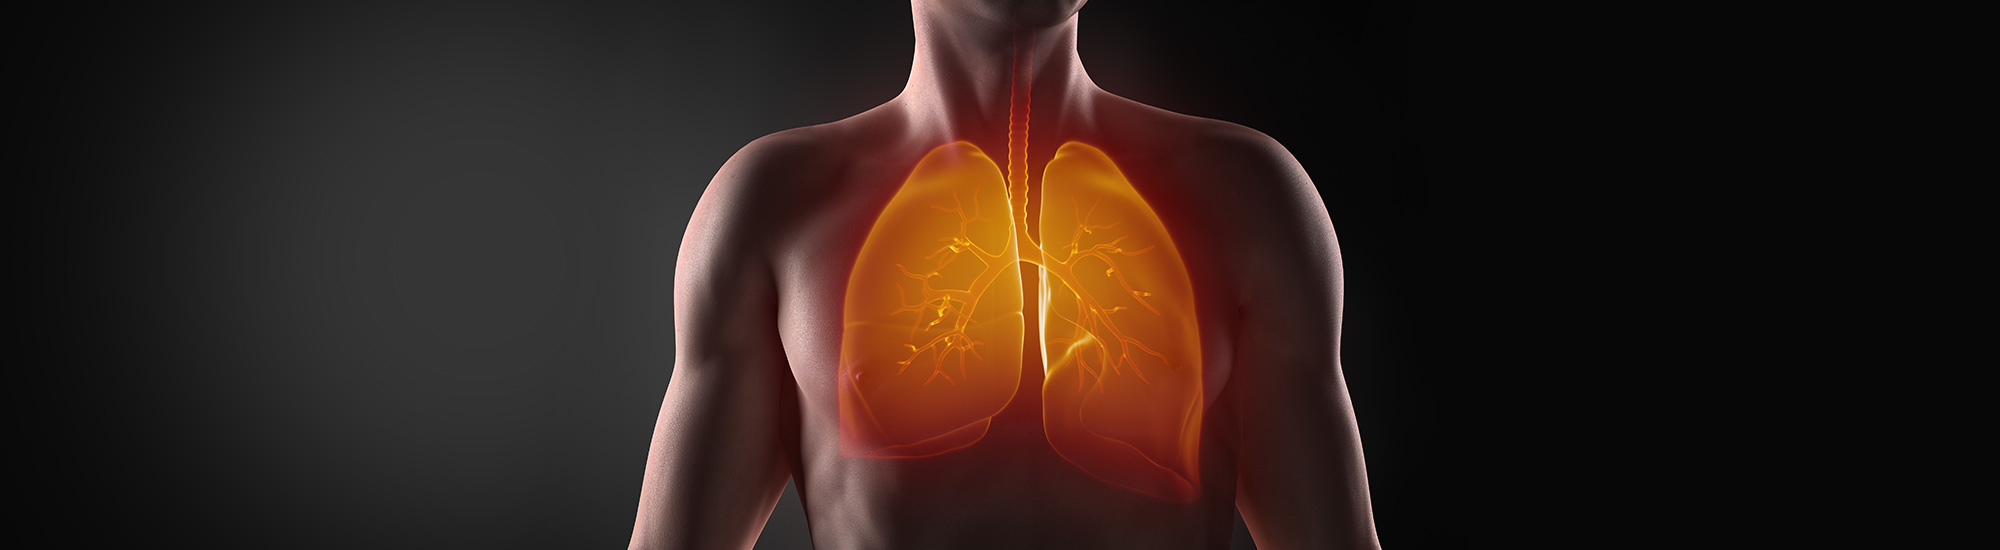 Ayurvedic treatment for Pneumonitis